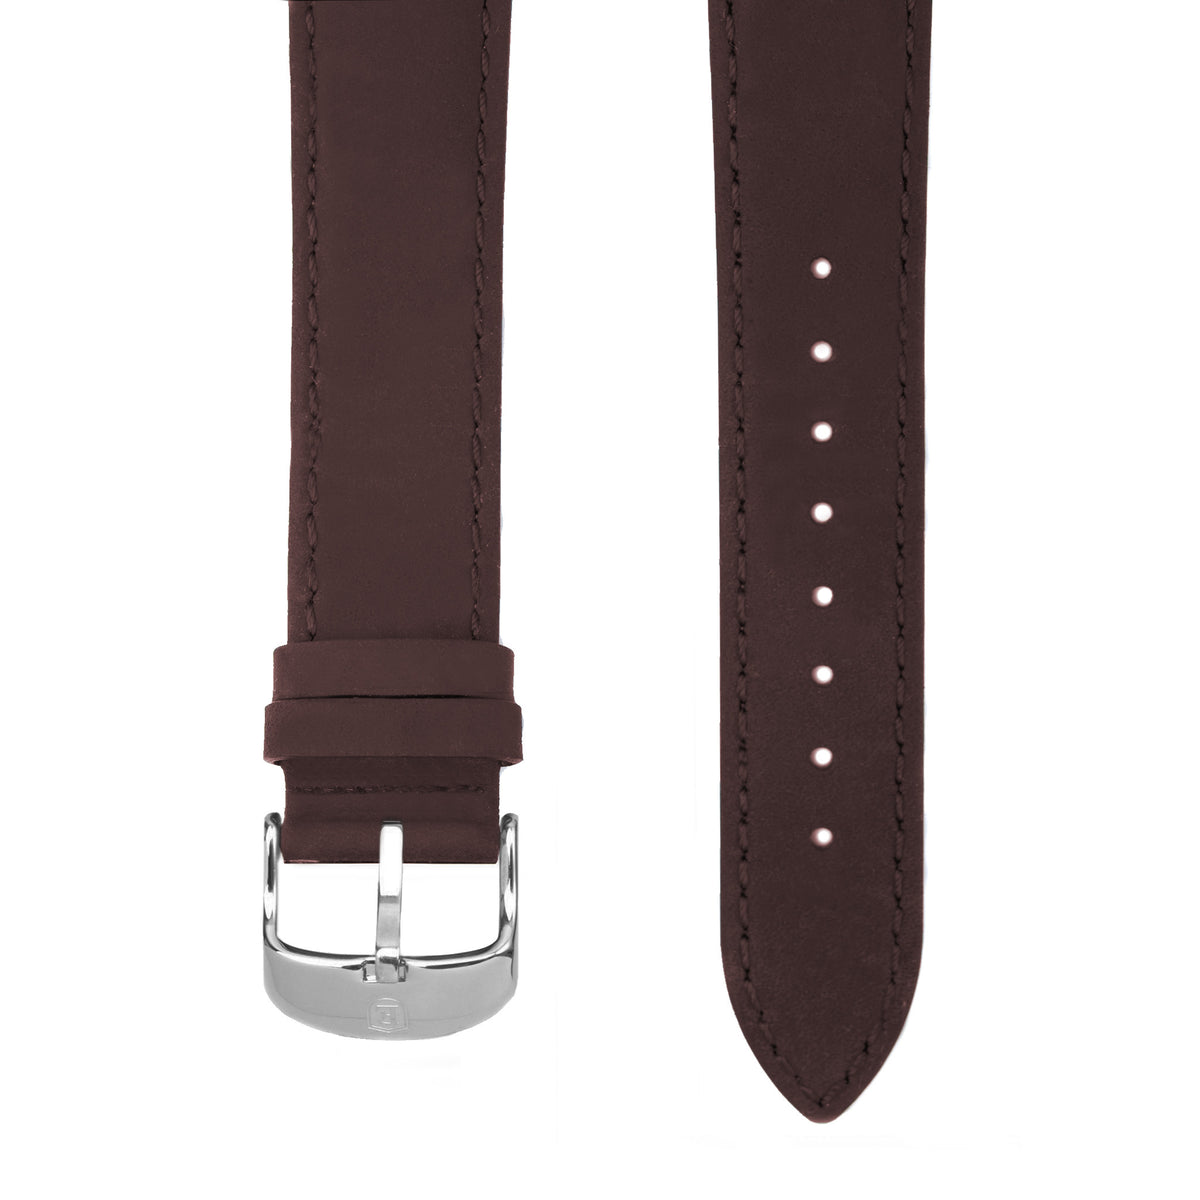 Dark Brown Italian Crazy Horse Leather Strap with Stainless Steel Pin Buckle